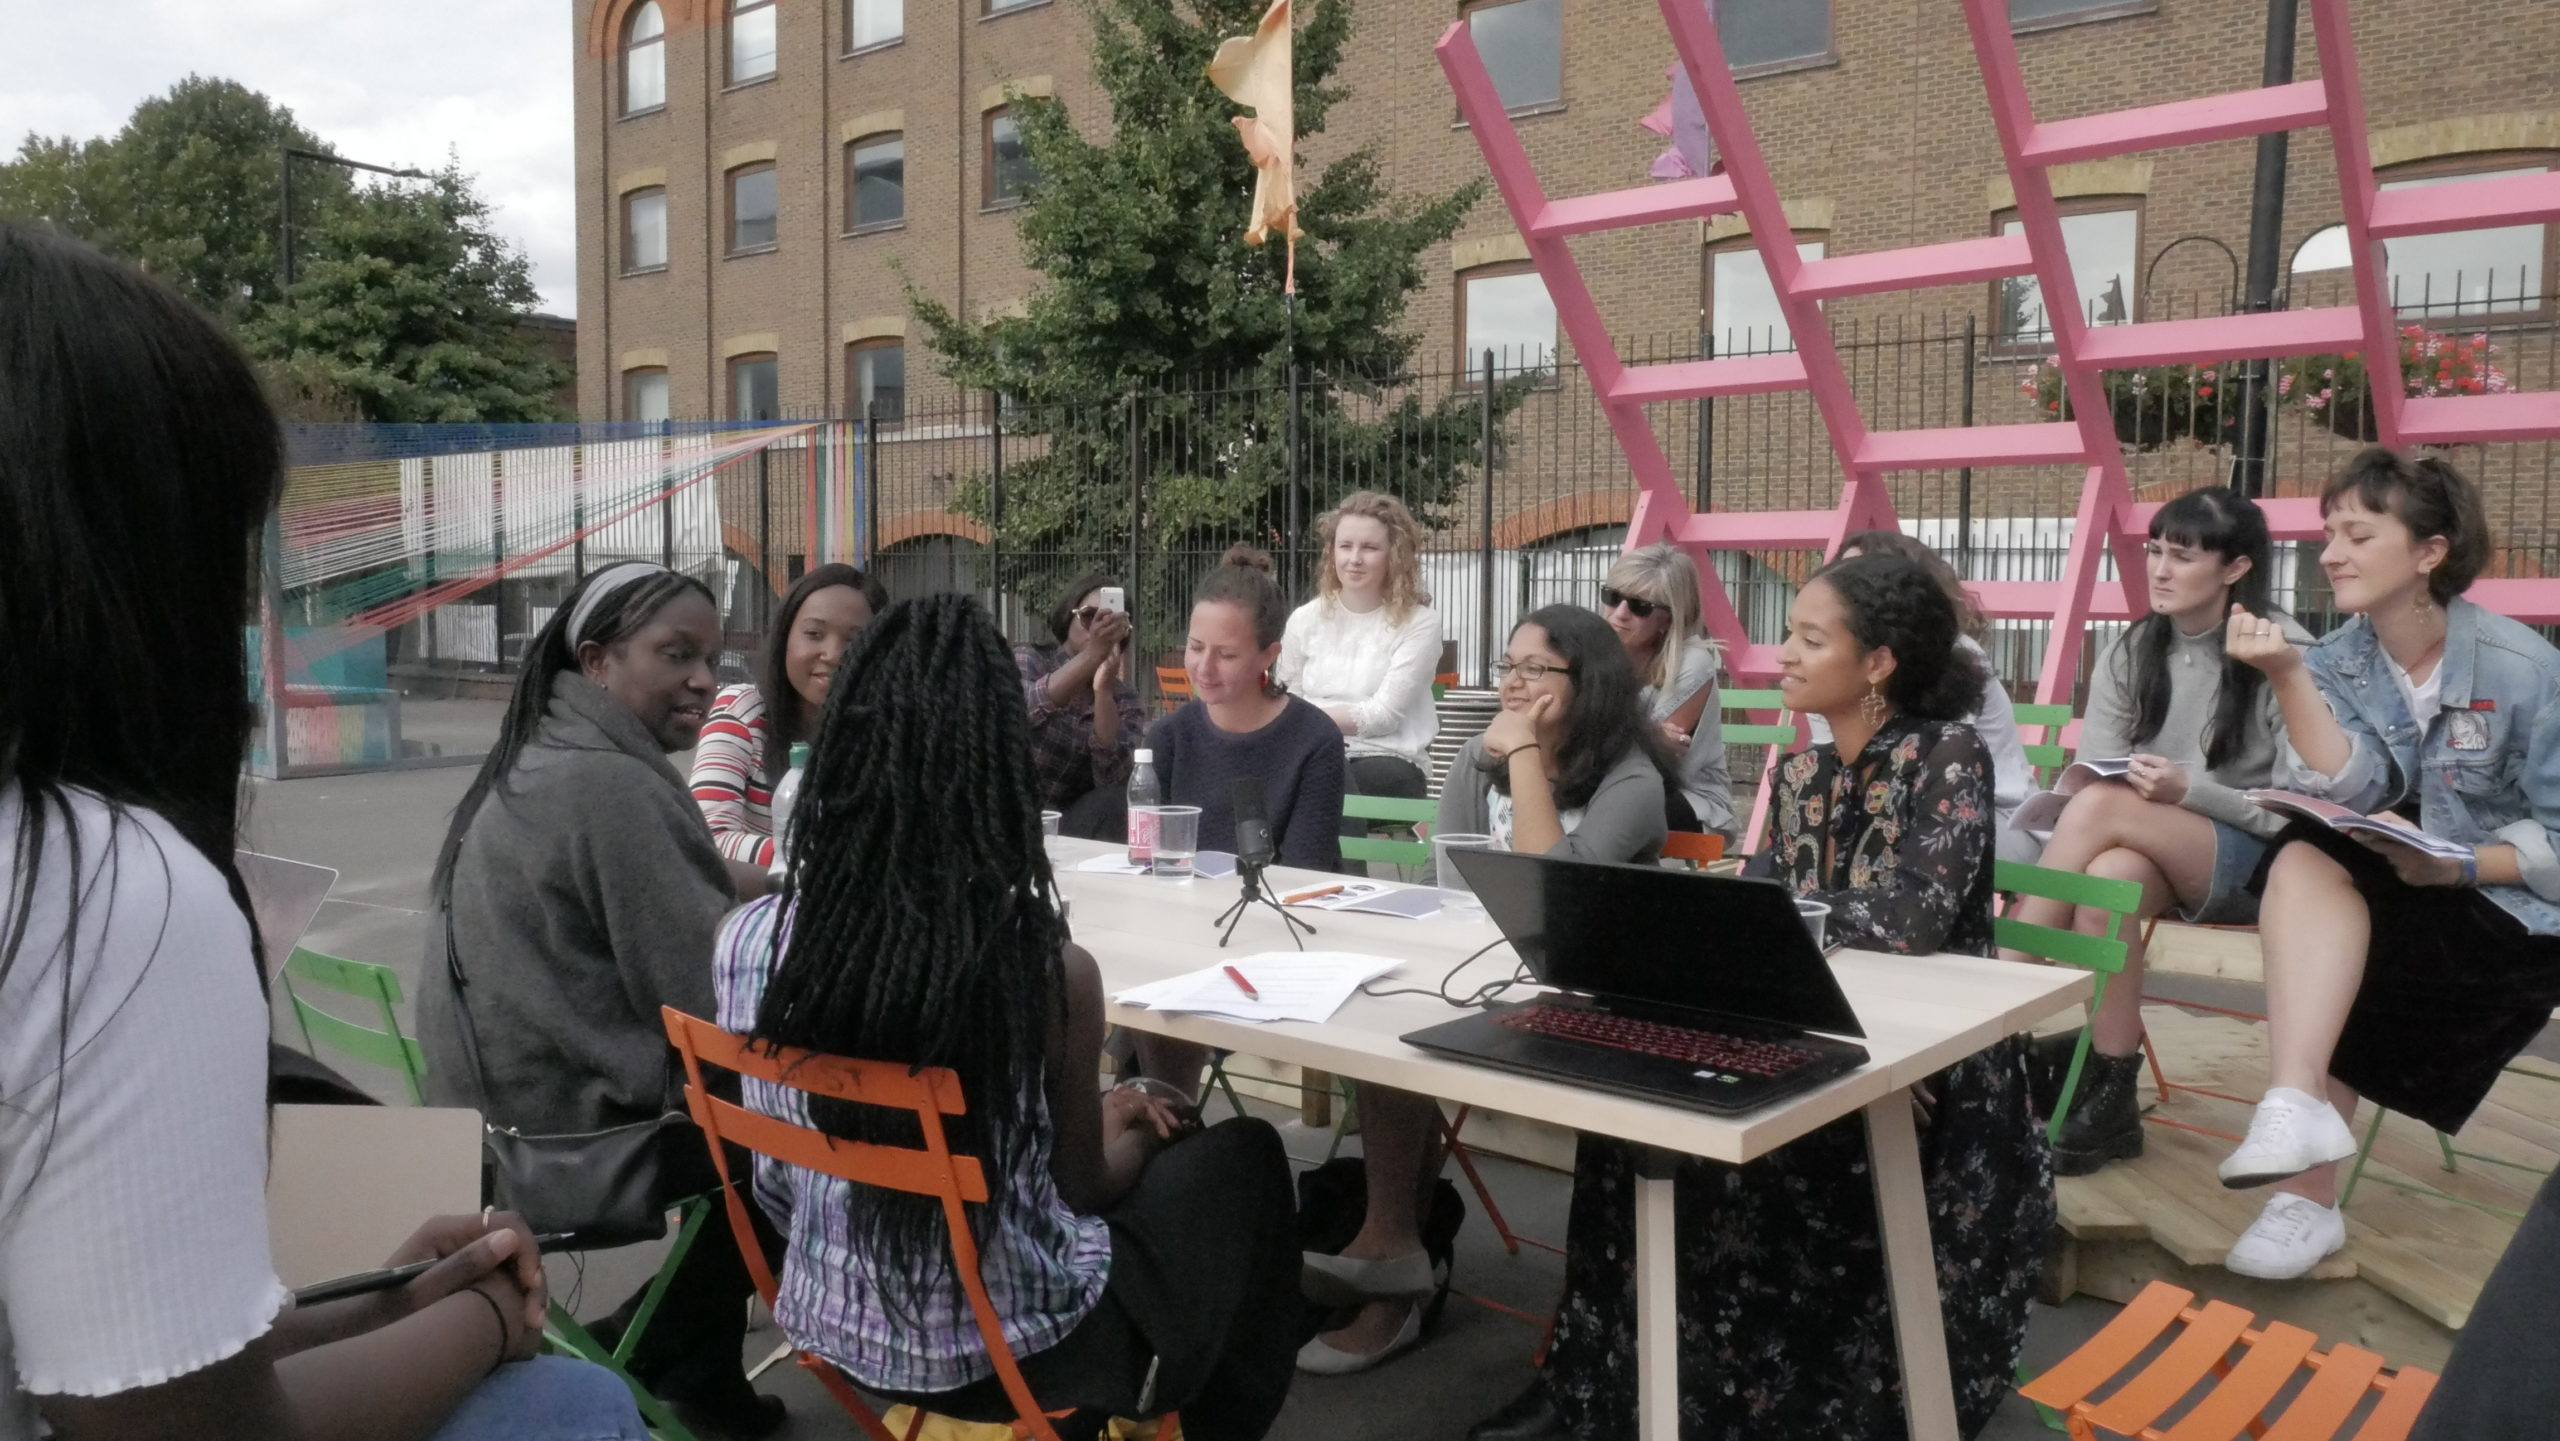 Design South East – Design South East announces a new initiative, our Design for Communities Fund